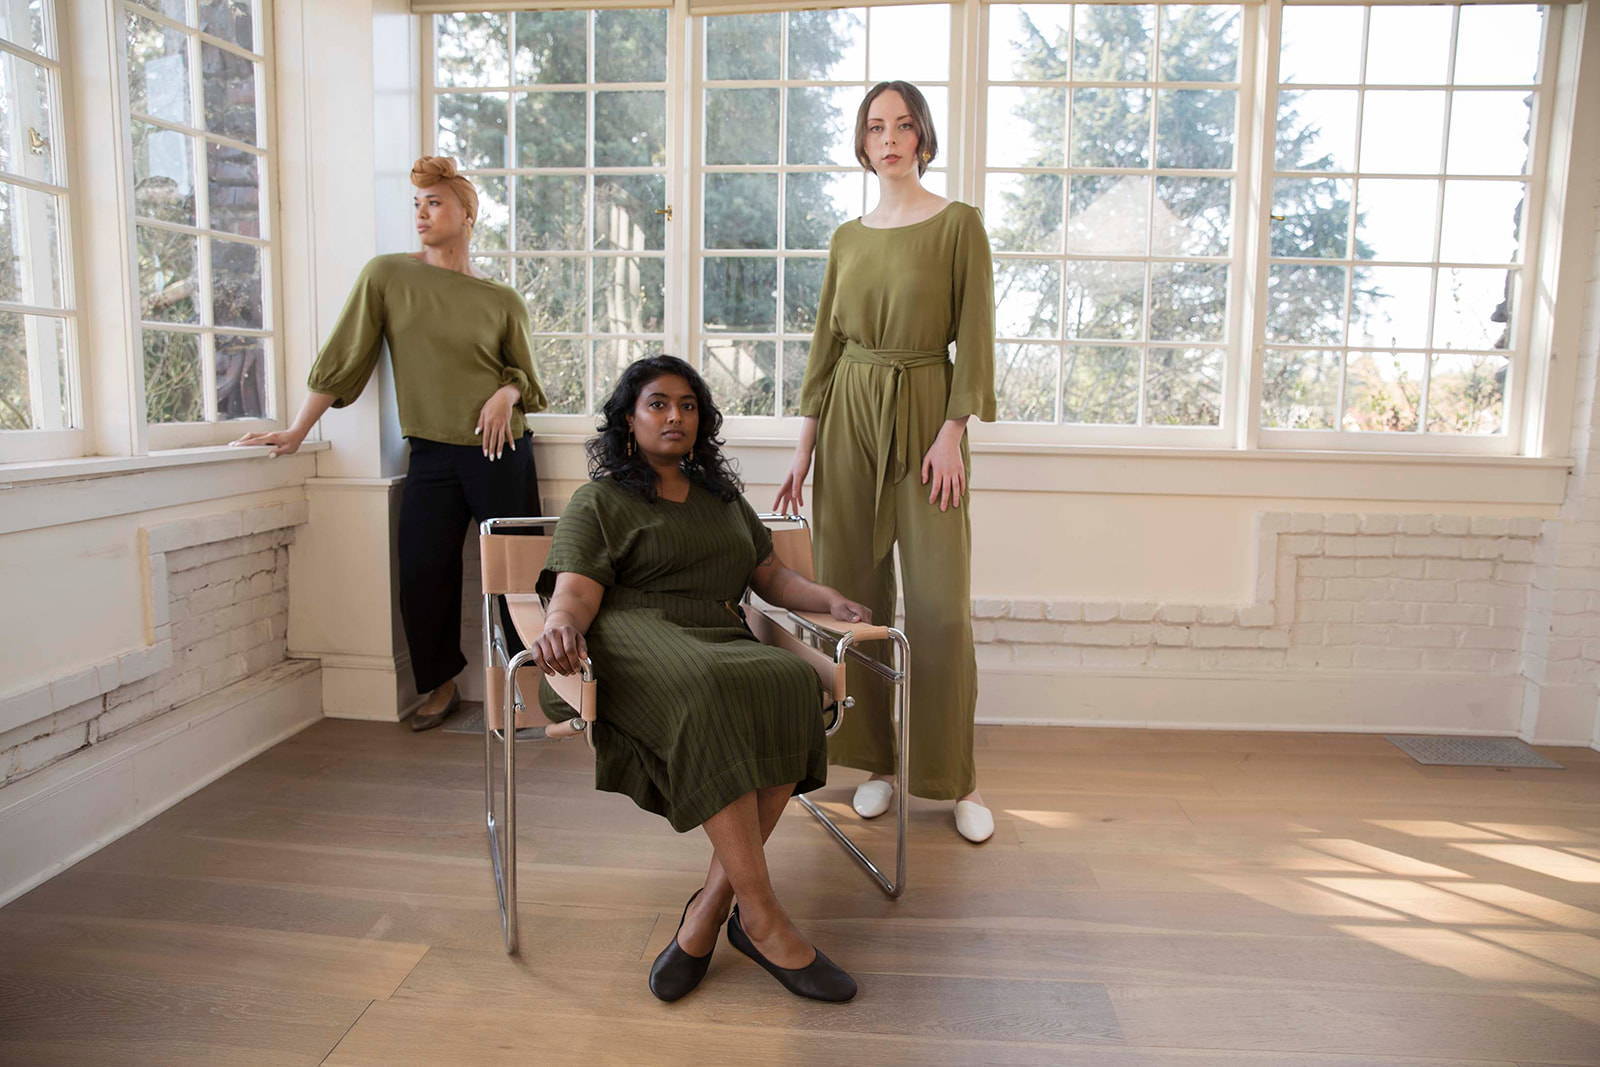 Models wearing the zero waste Hanae collection in moss green